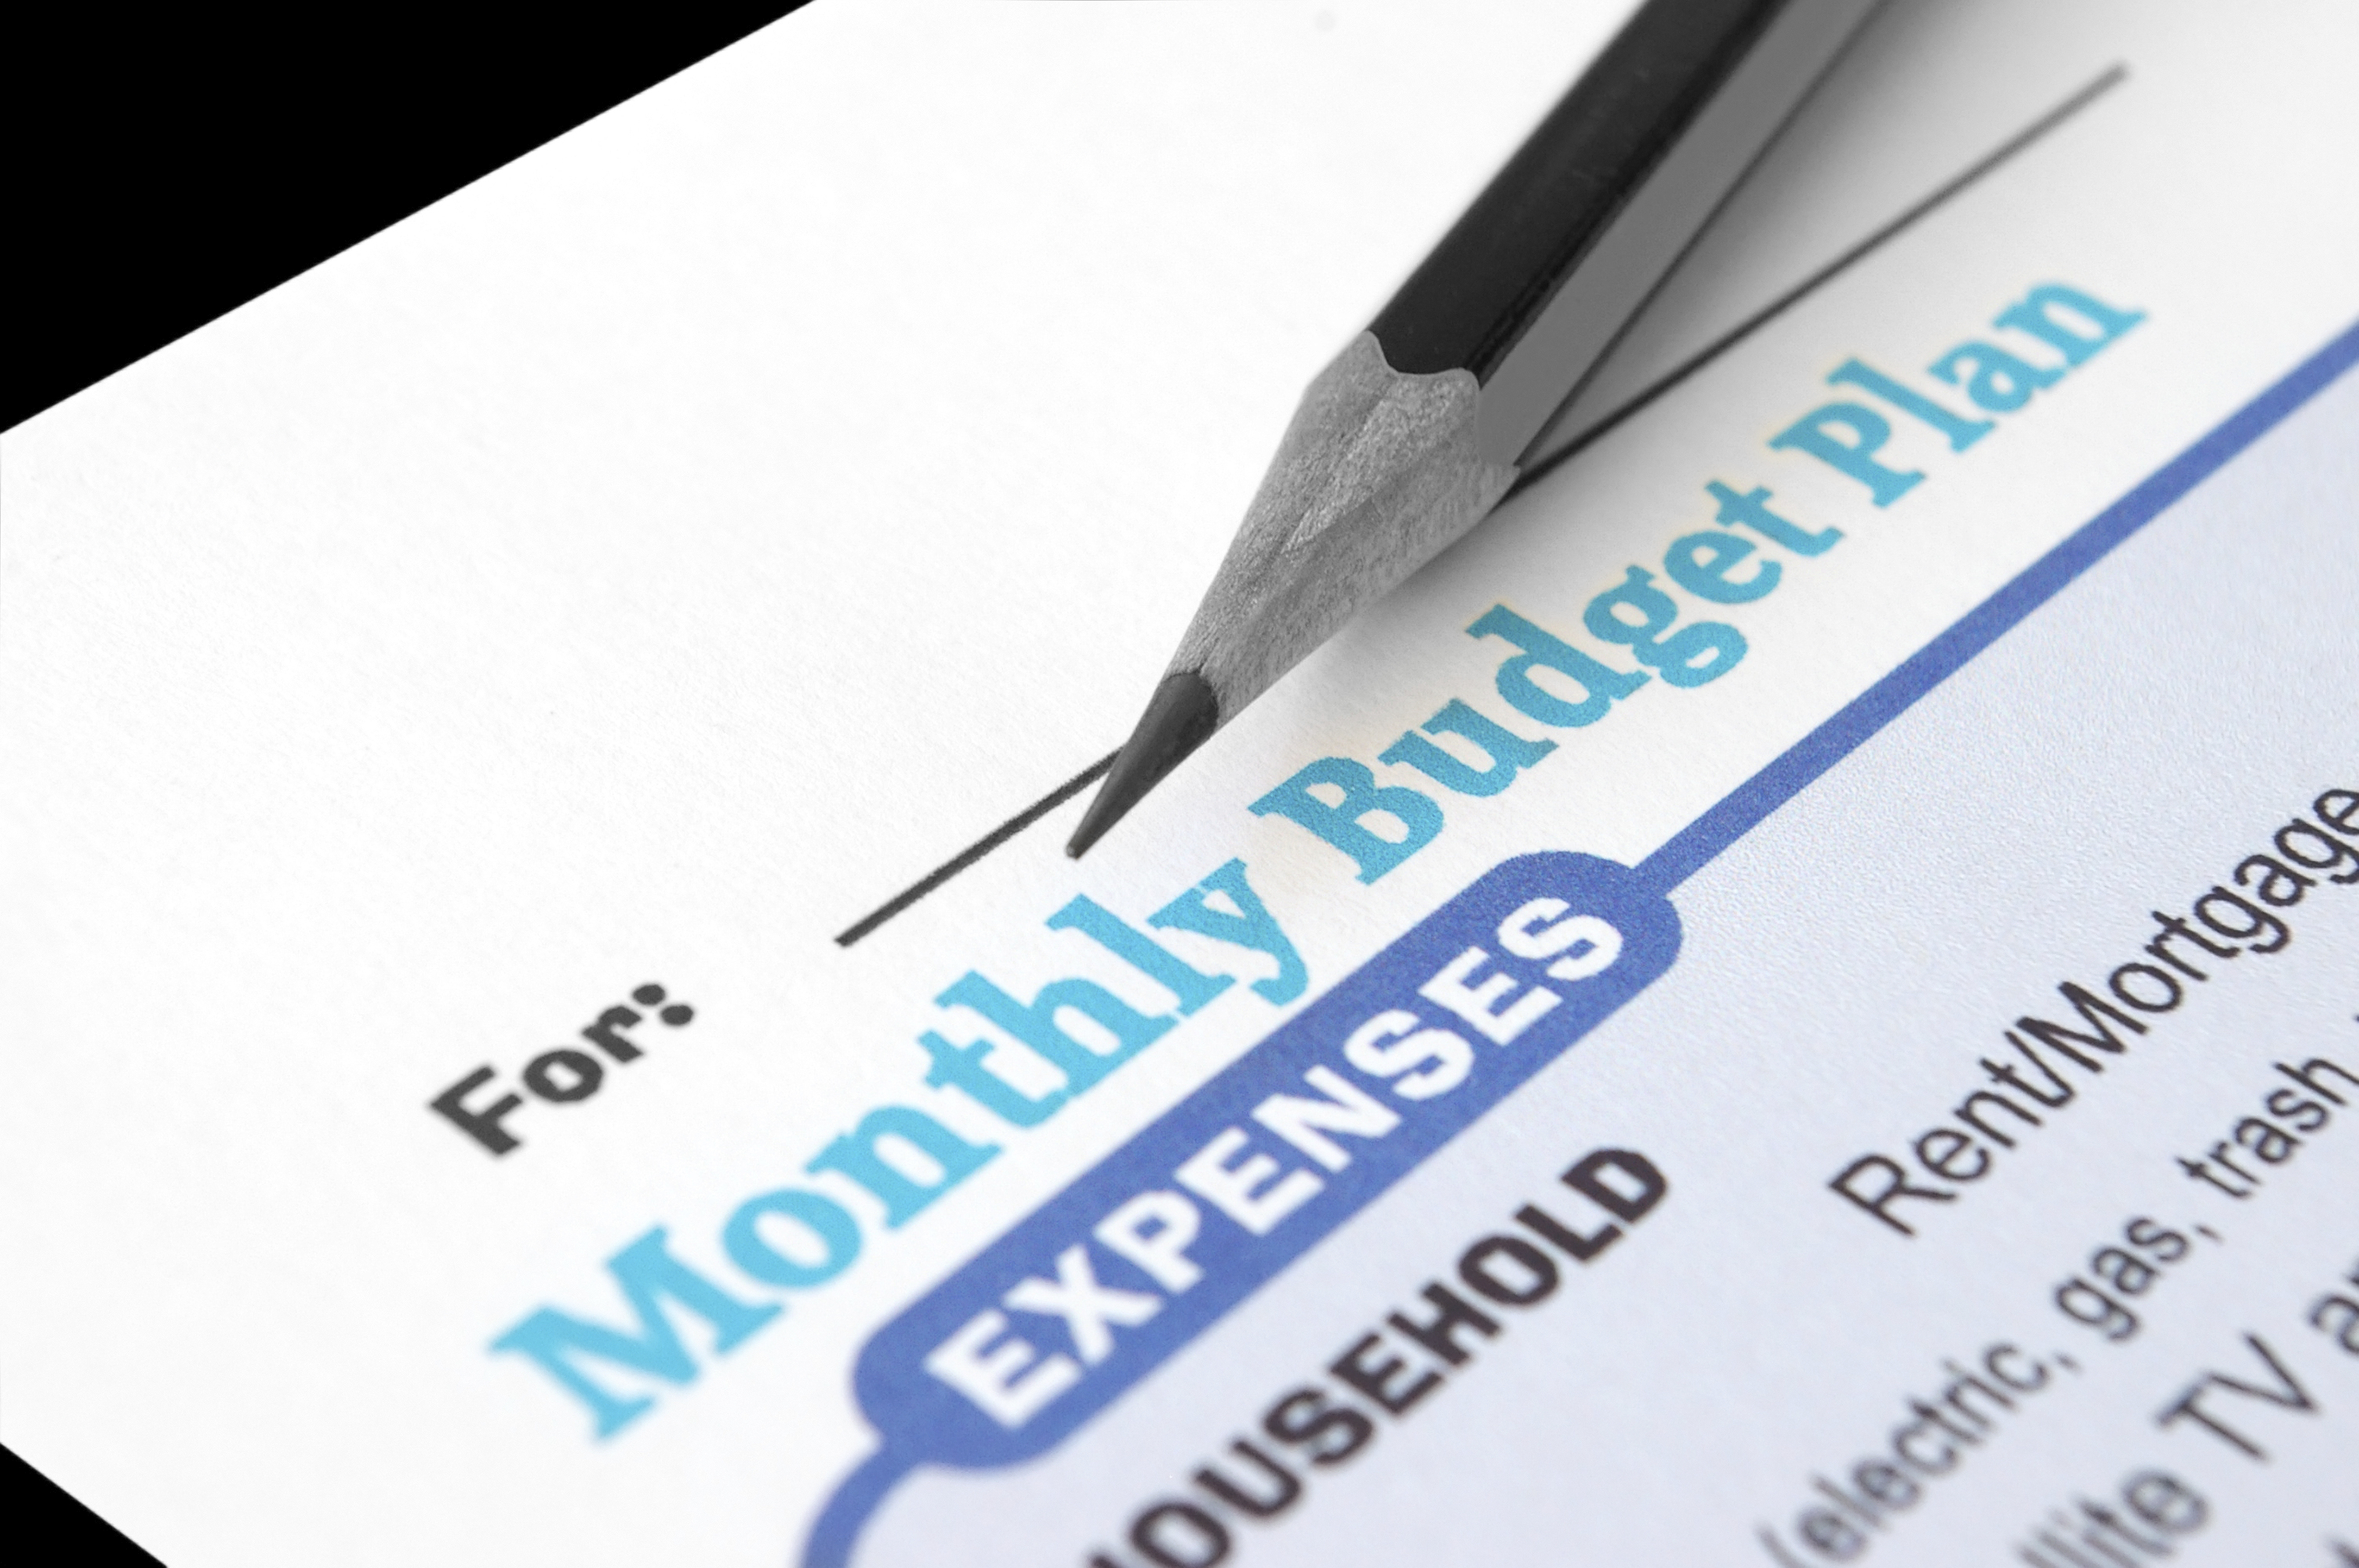 5 ways to slash your monthly expenses - CBS News